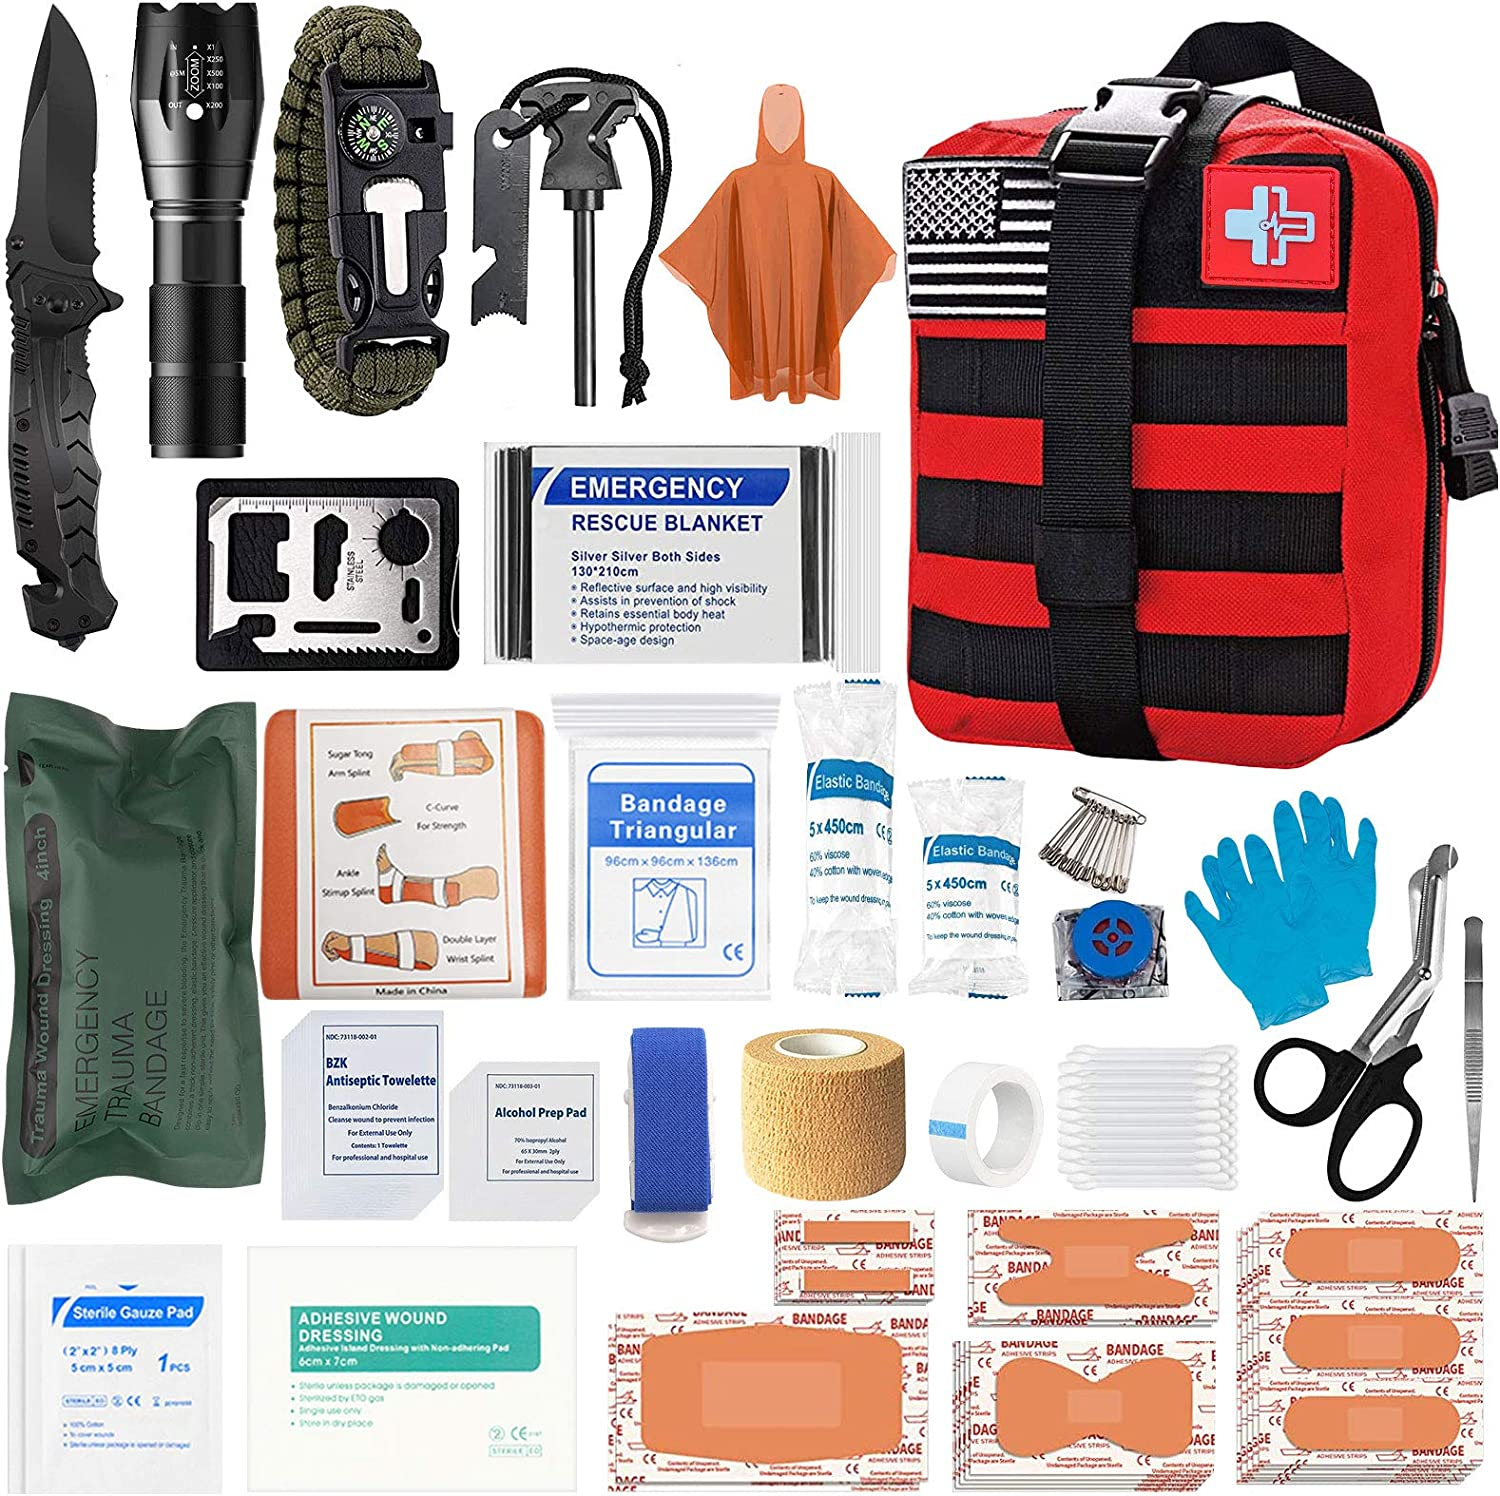 [2021 Upgrade] First Aid Kit Medical Reinforcement Type Outdoor Tactical Gear Set Trauma Bandage Hiking Safety Set for Boat Car (RED)